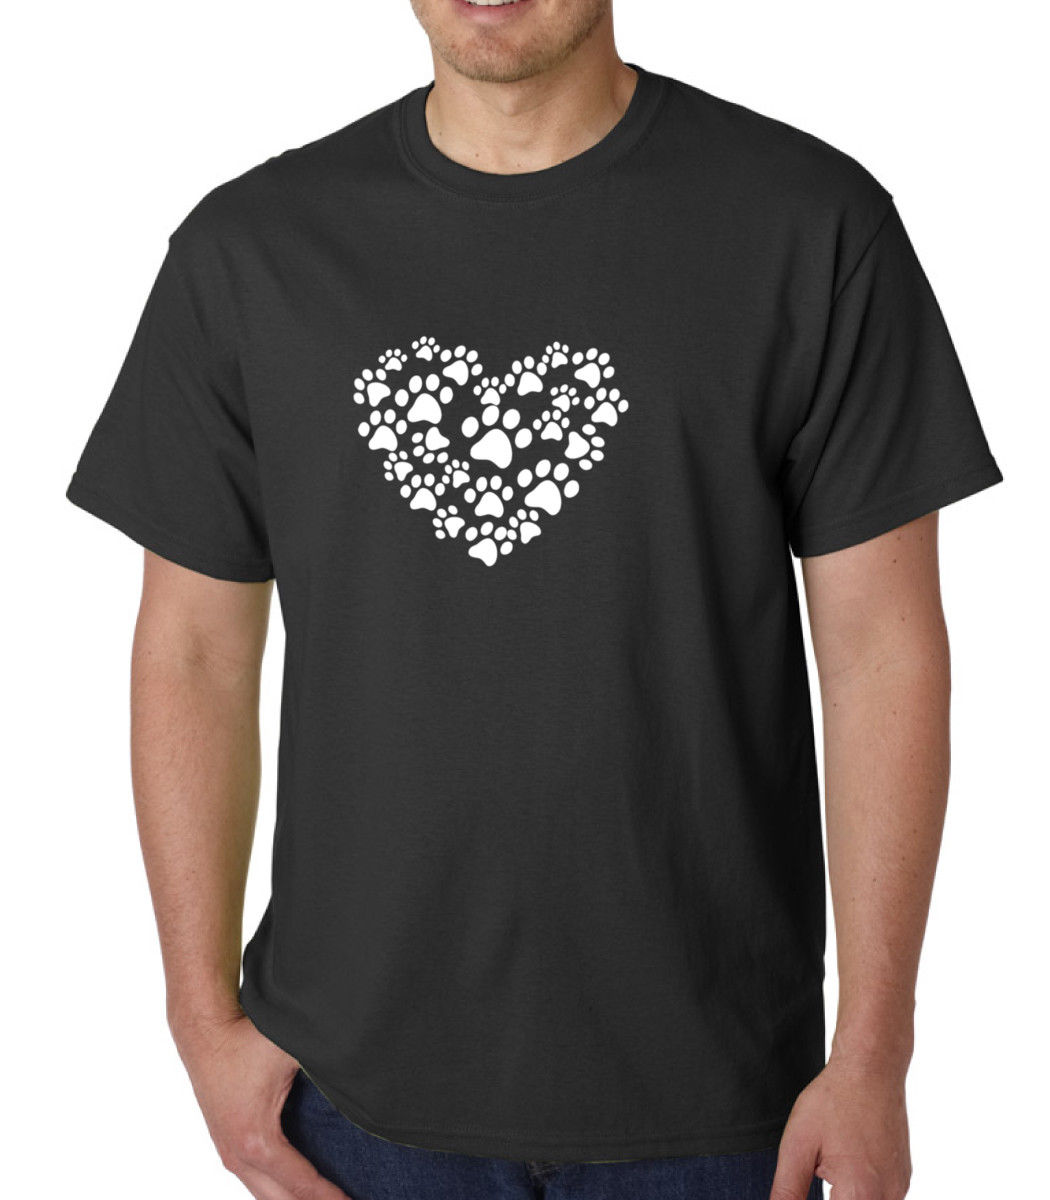 Heart Paw T Shirt Dog Cat Animal Lover Pet Tee T Shirt Valentines Day Love Paws2019 fashionable Brand 100%cotton Printed Round N